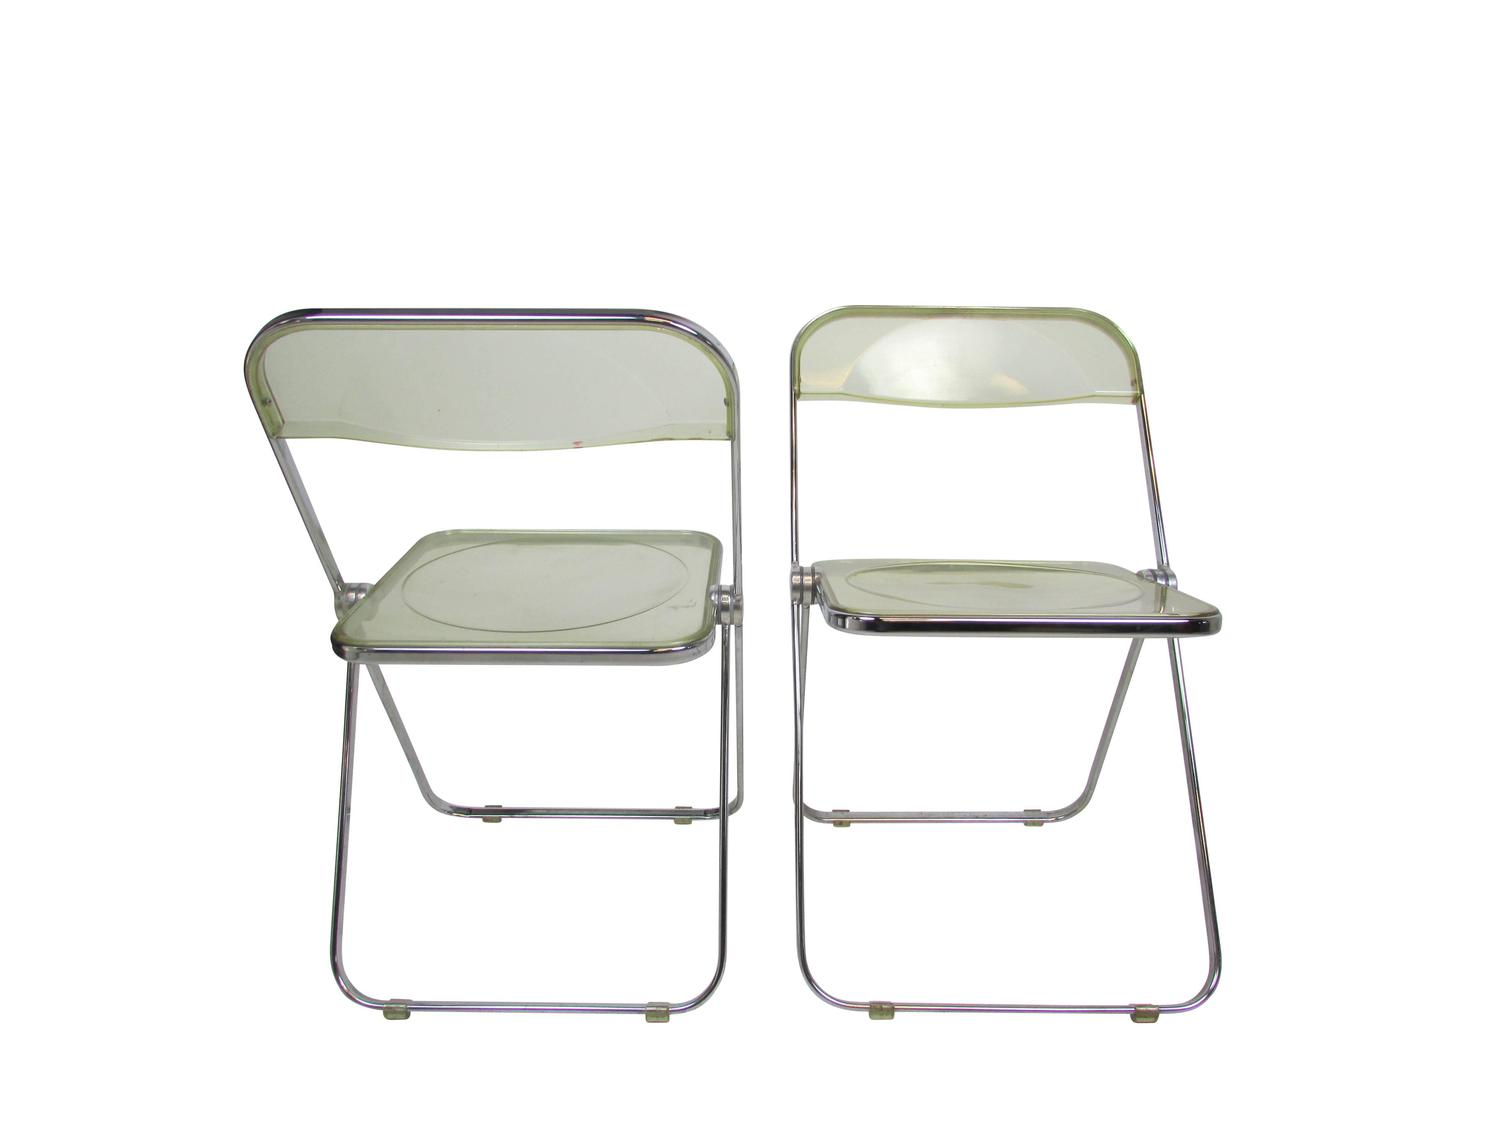 acrylic folding chairs swing on your chair mid century lucite plia at 1stdibs